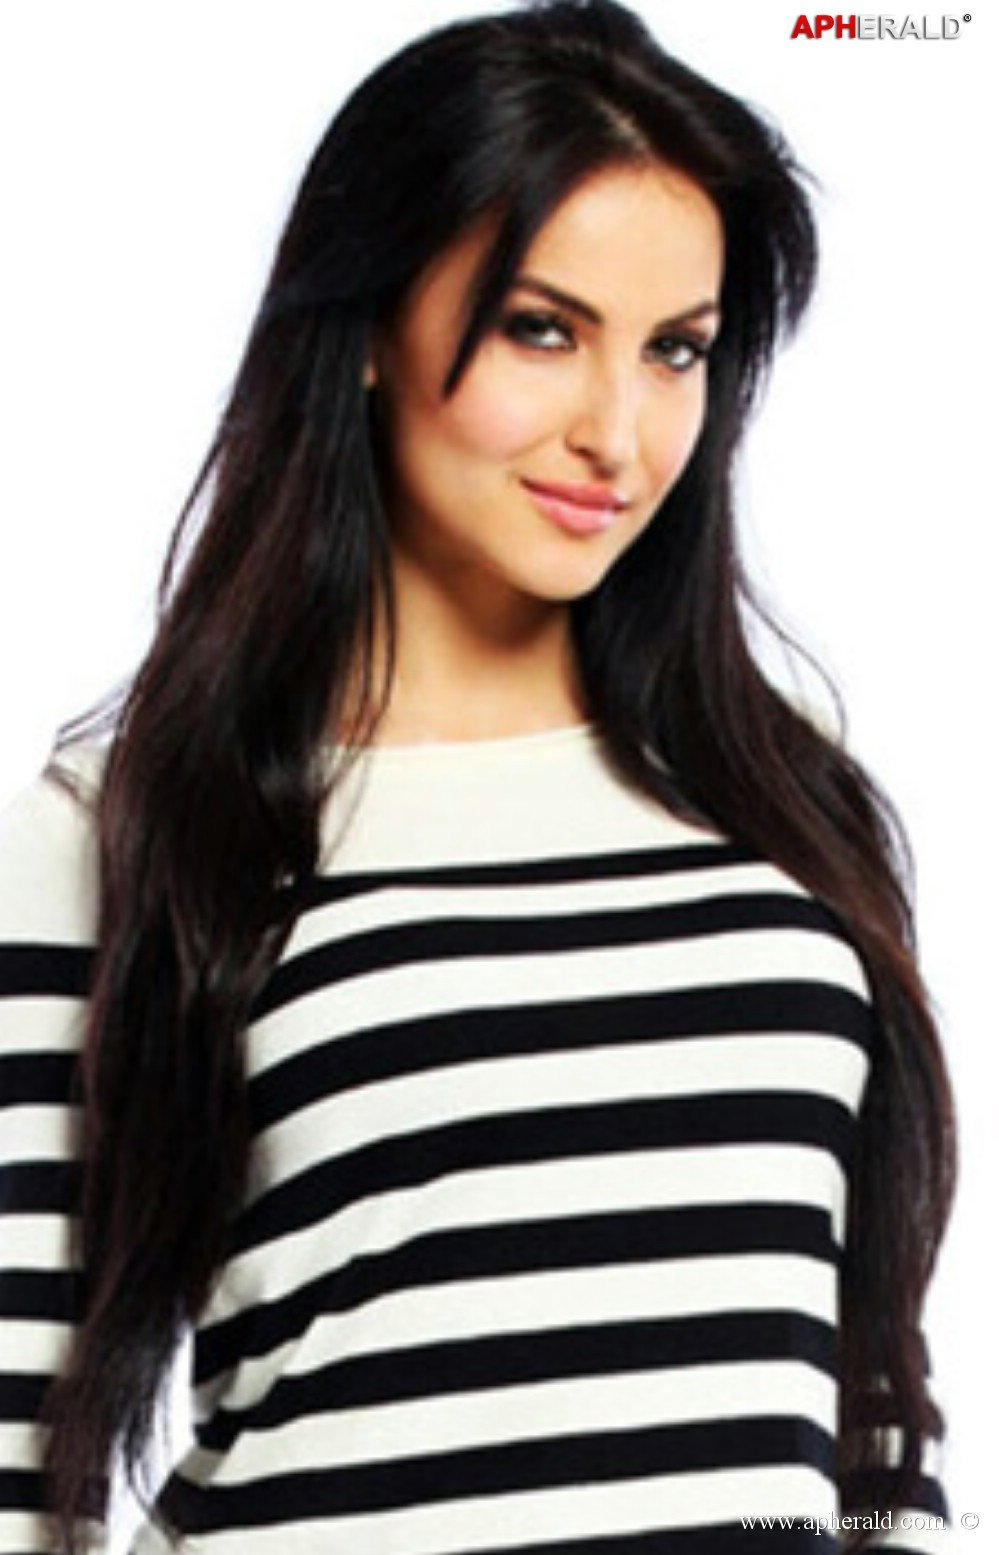 http://www.apherald.com/ImageStore/images/movies/movies_sizzlers/Elli-Avram-Hot-Pics1.jpg